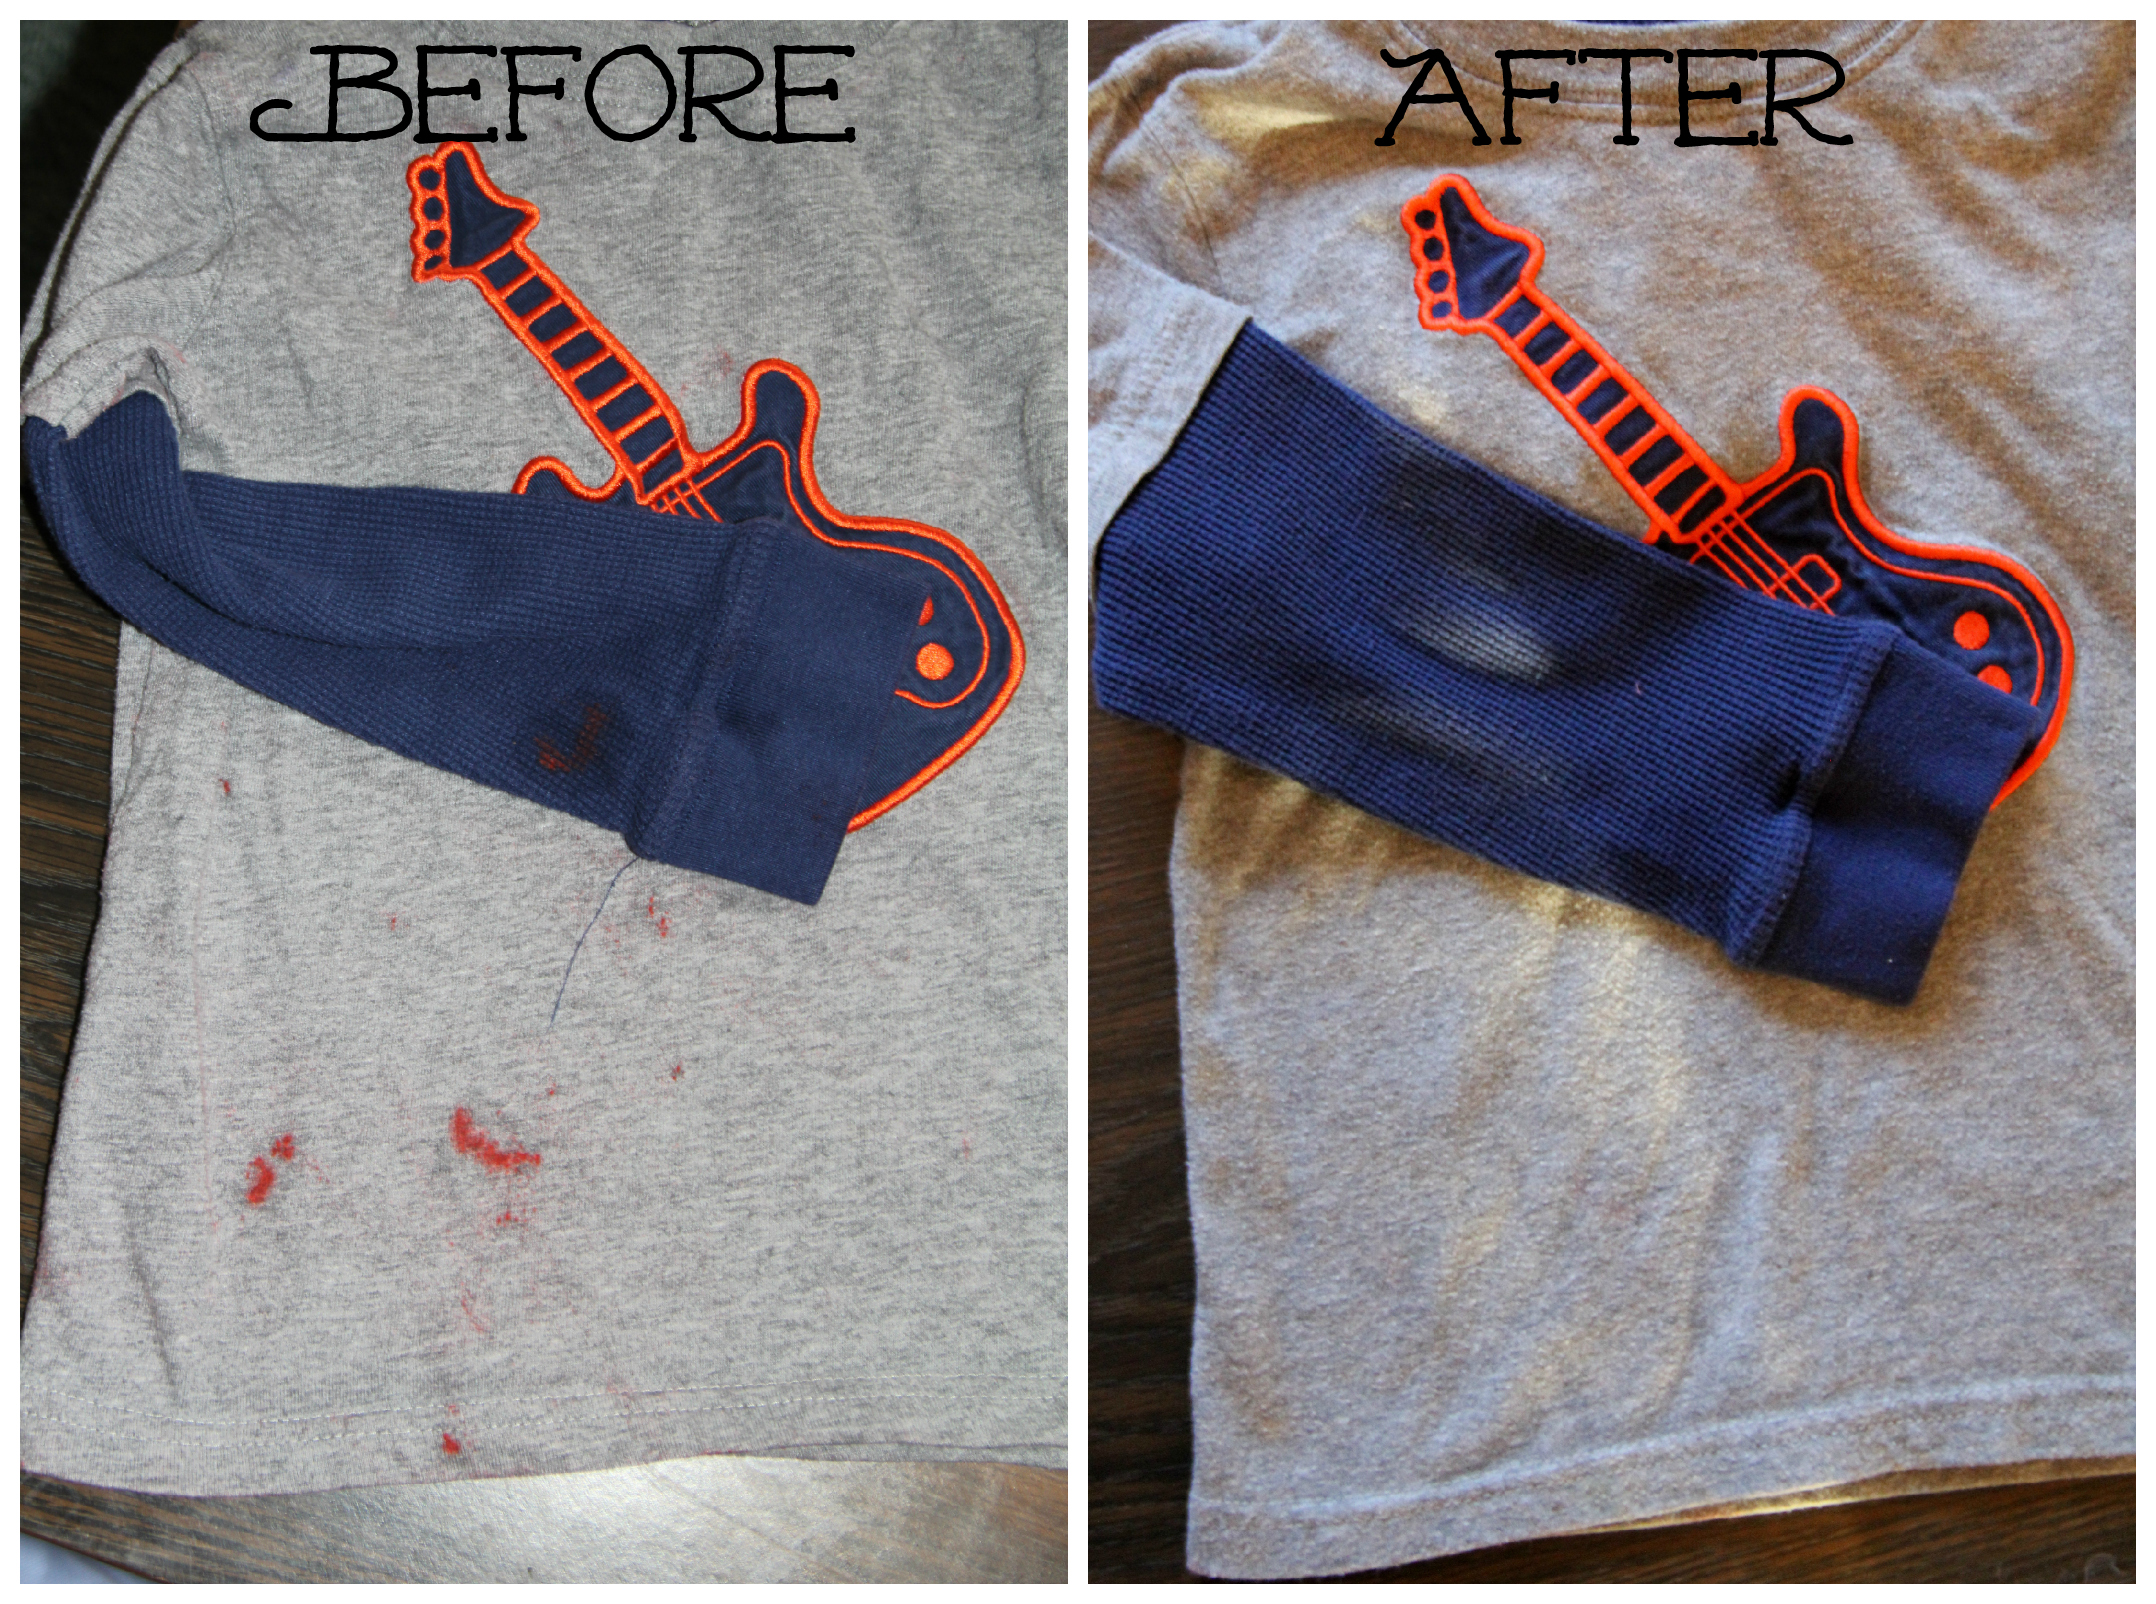 How To Get Melted Crayon Out Of Clothes Stains In The Dryer